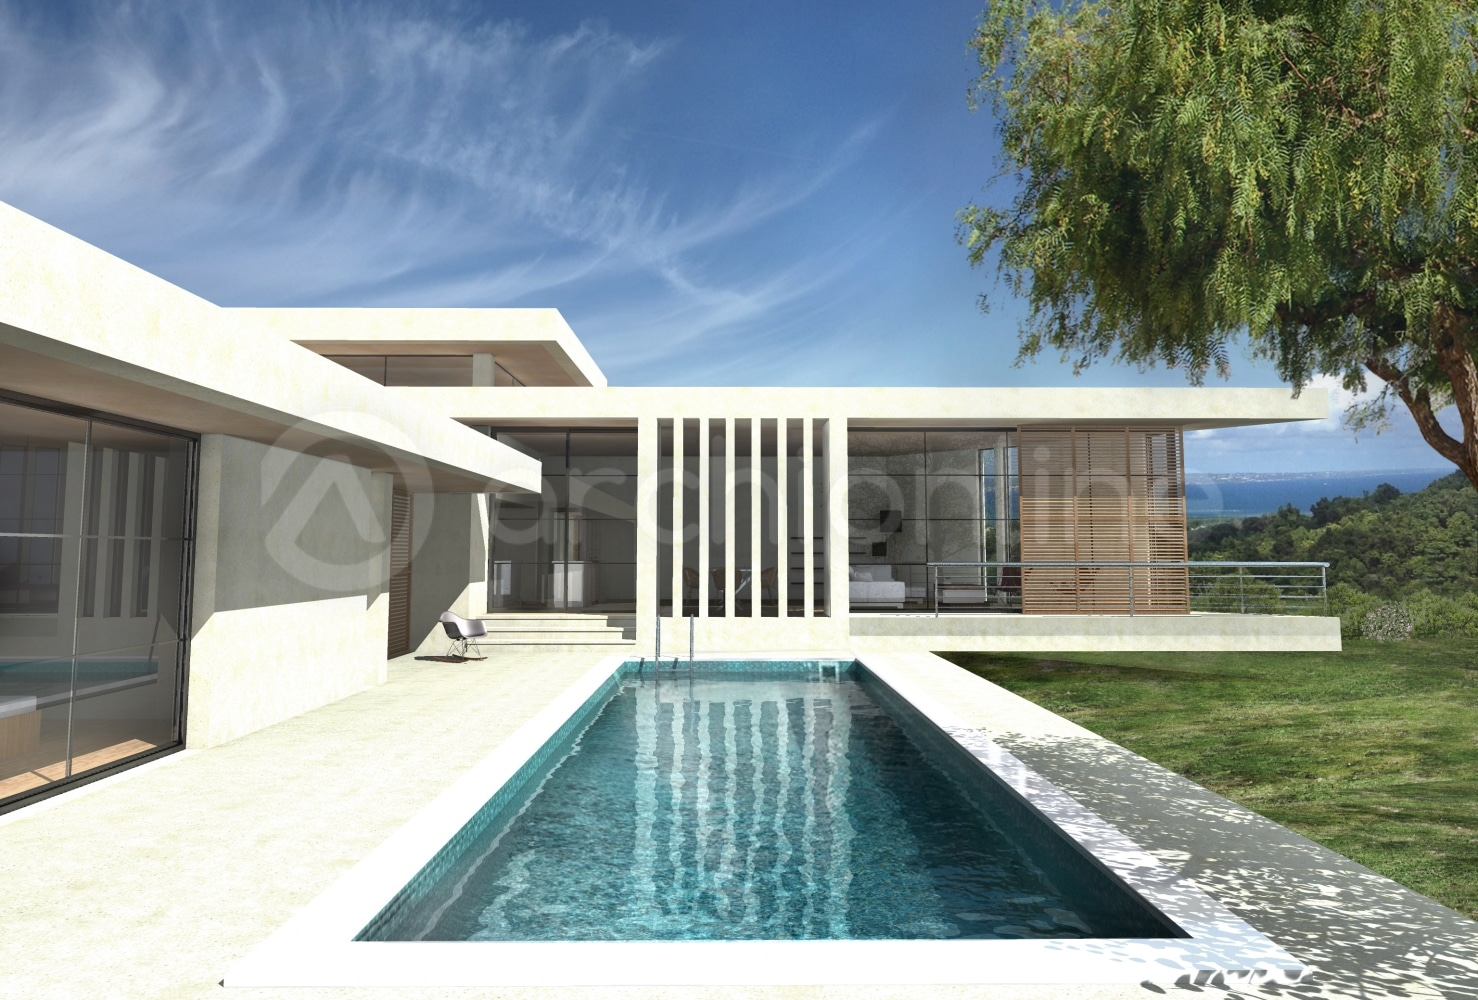 Maison moderne plain pied architecte for Plan maison contemporaine plain pied architecte